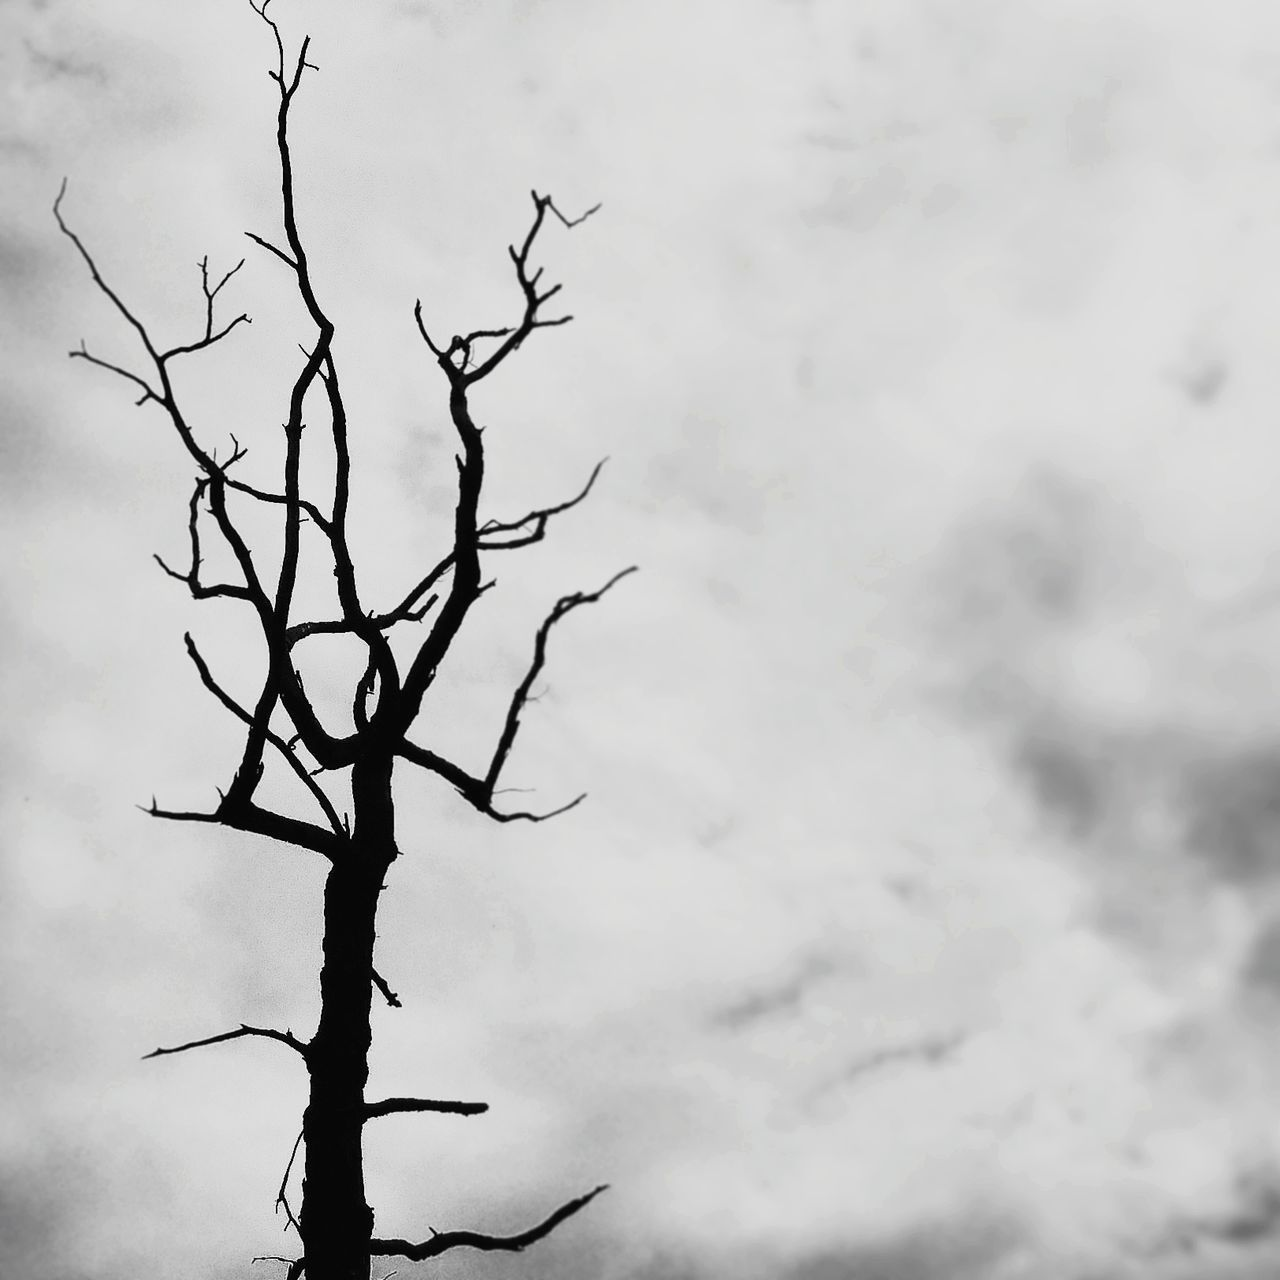 low angle view, sky, bare tree, branch, nature, outdoors, tranquility, cloud - sky, day, tree, no people, beauty in nature